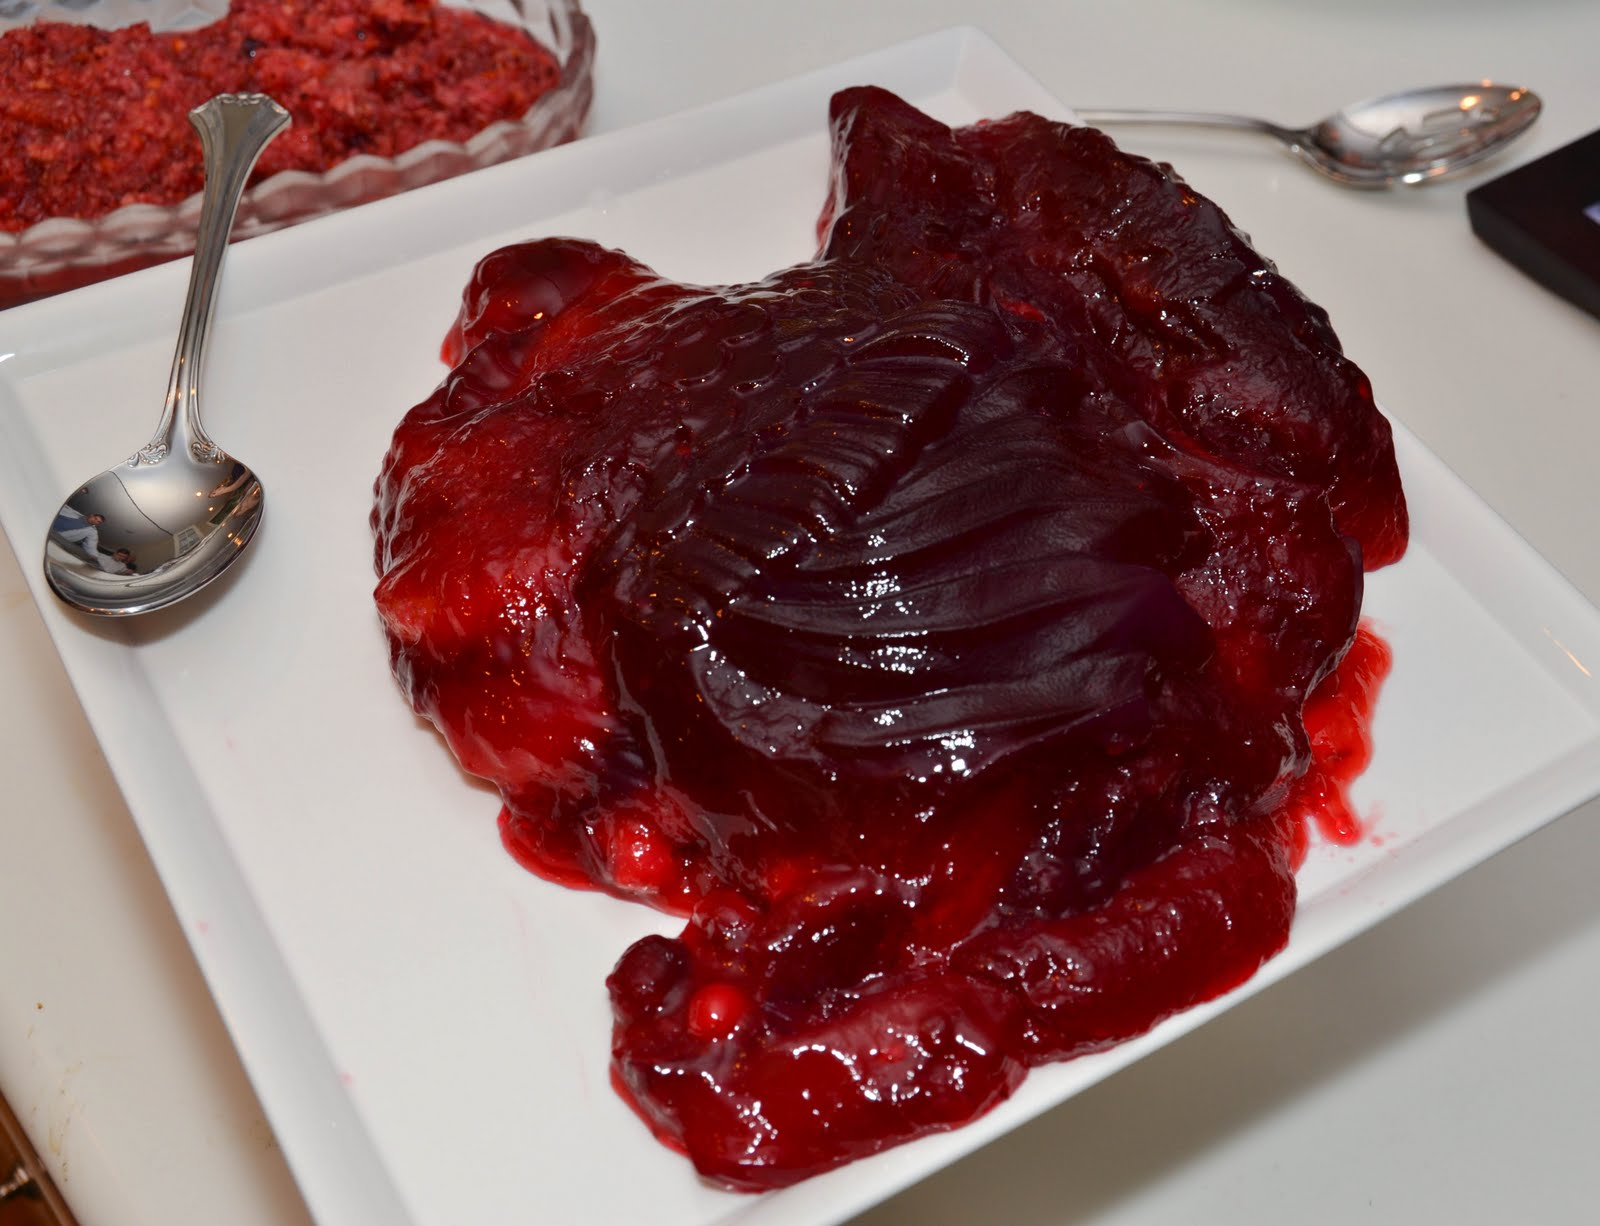 after seeing this recipe for a cranberry pomegranate gelatin shaped